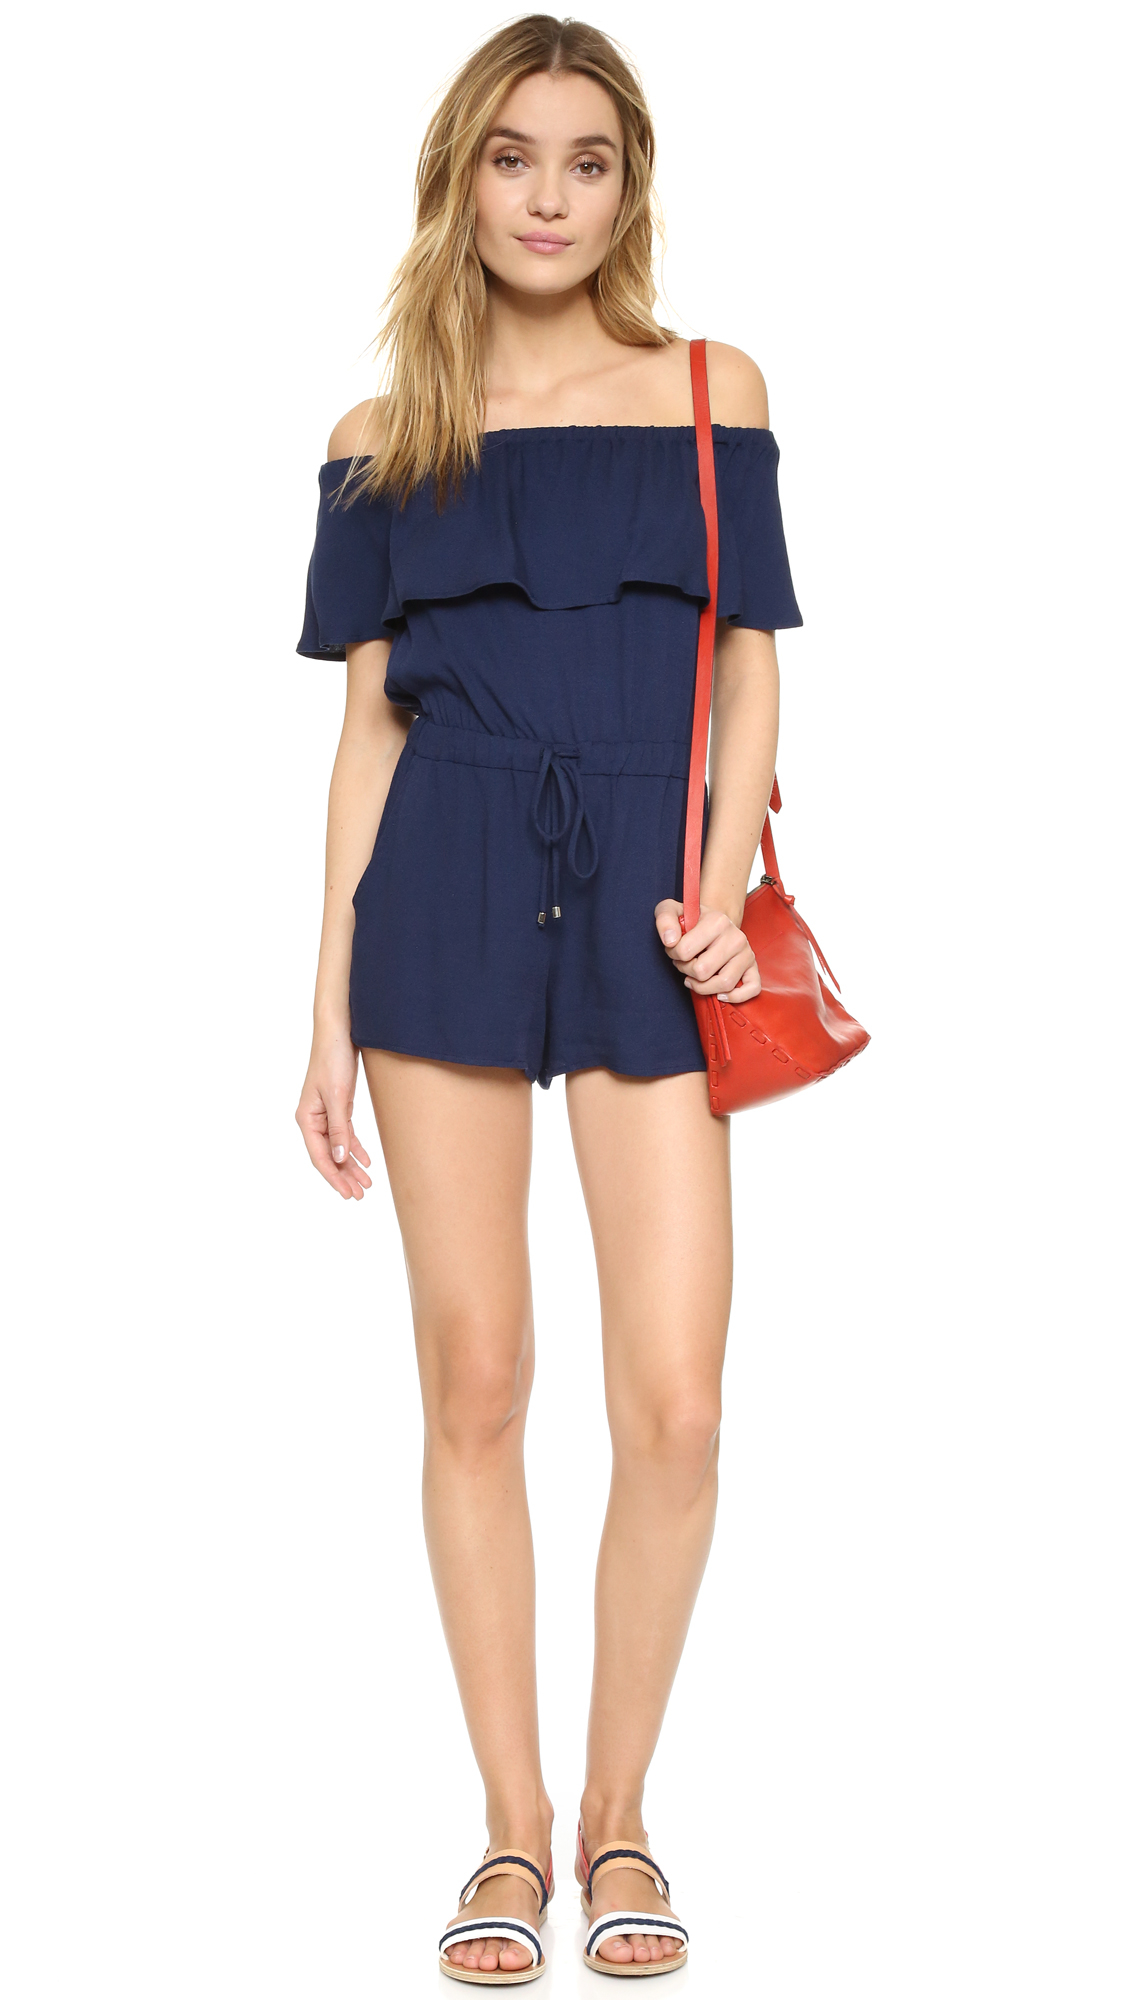 ad650991ca2 Lyst - Ella Moss Stella Off Shoulder Romper in Blue